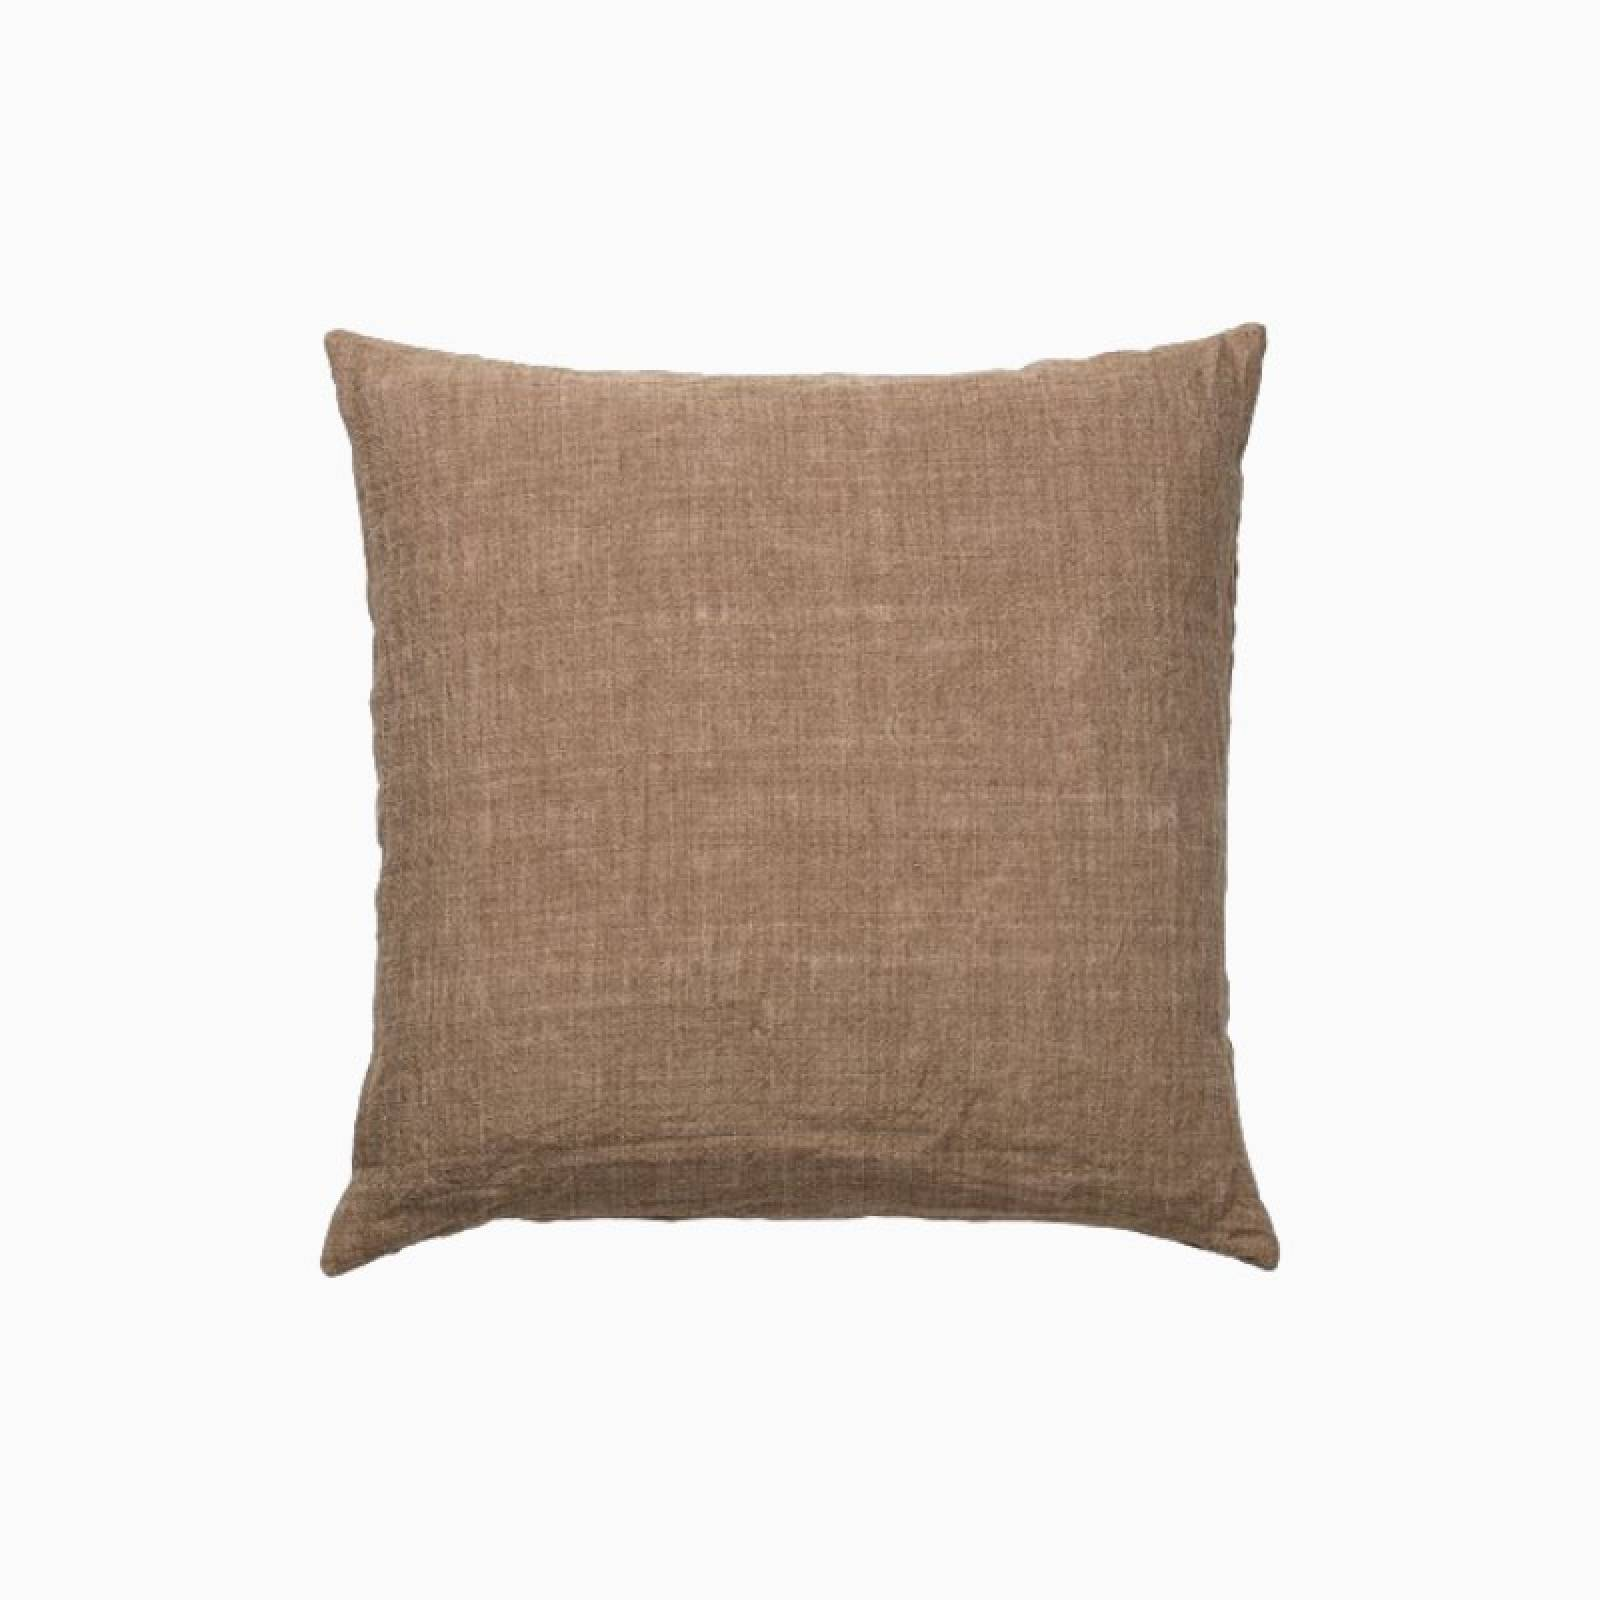 Square Linen Cushion In Mustard